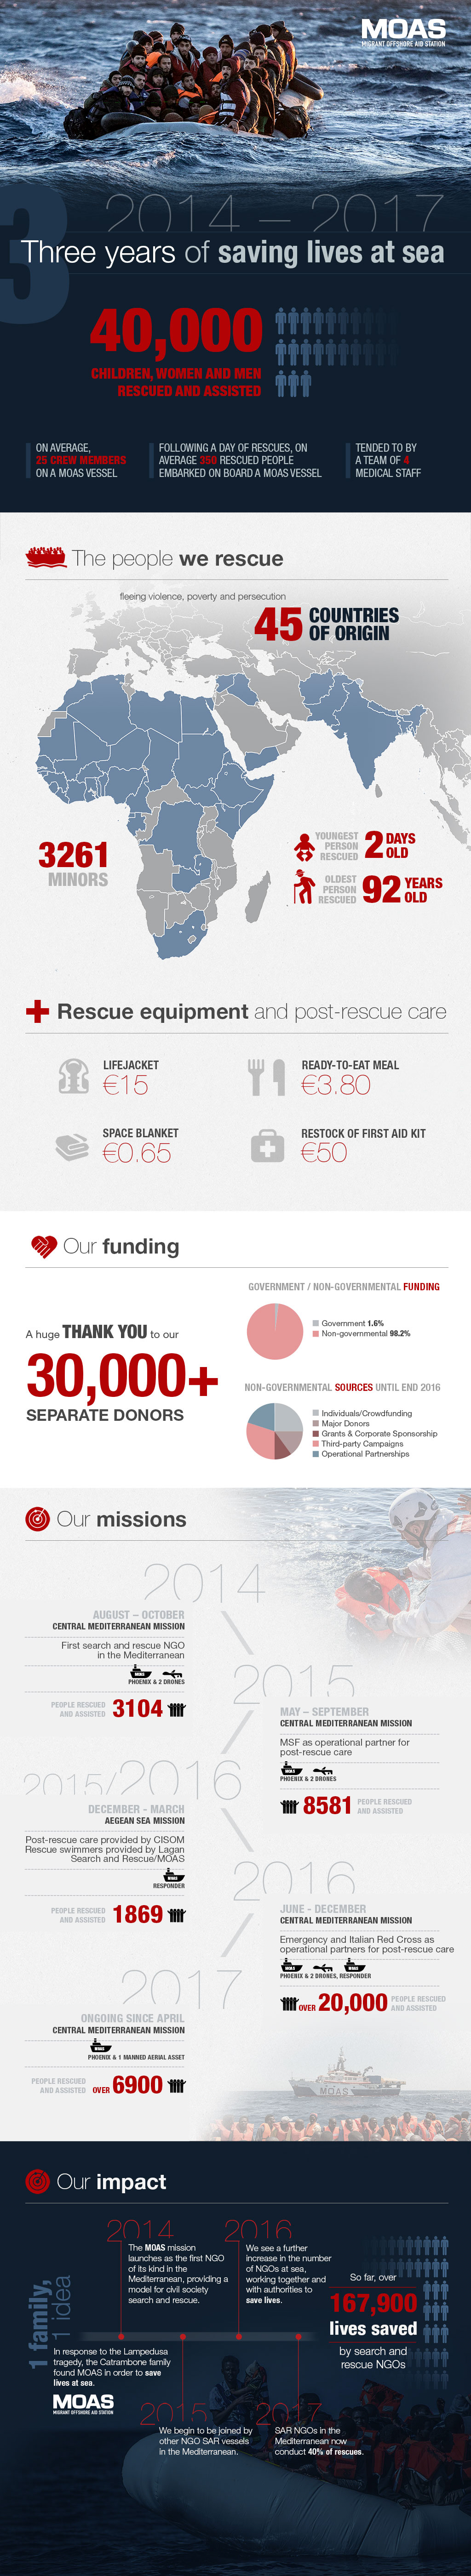 moas-infographic-2014-2017